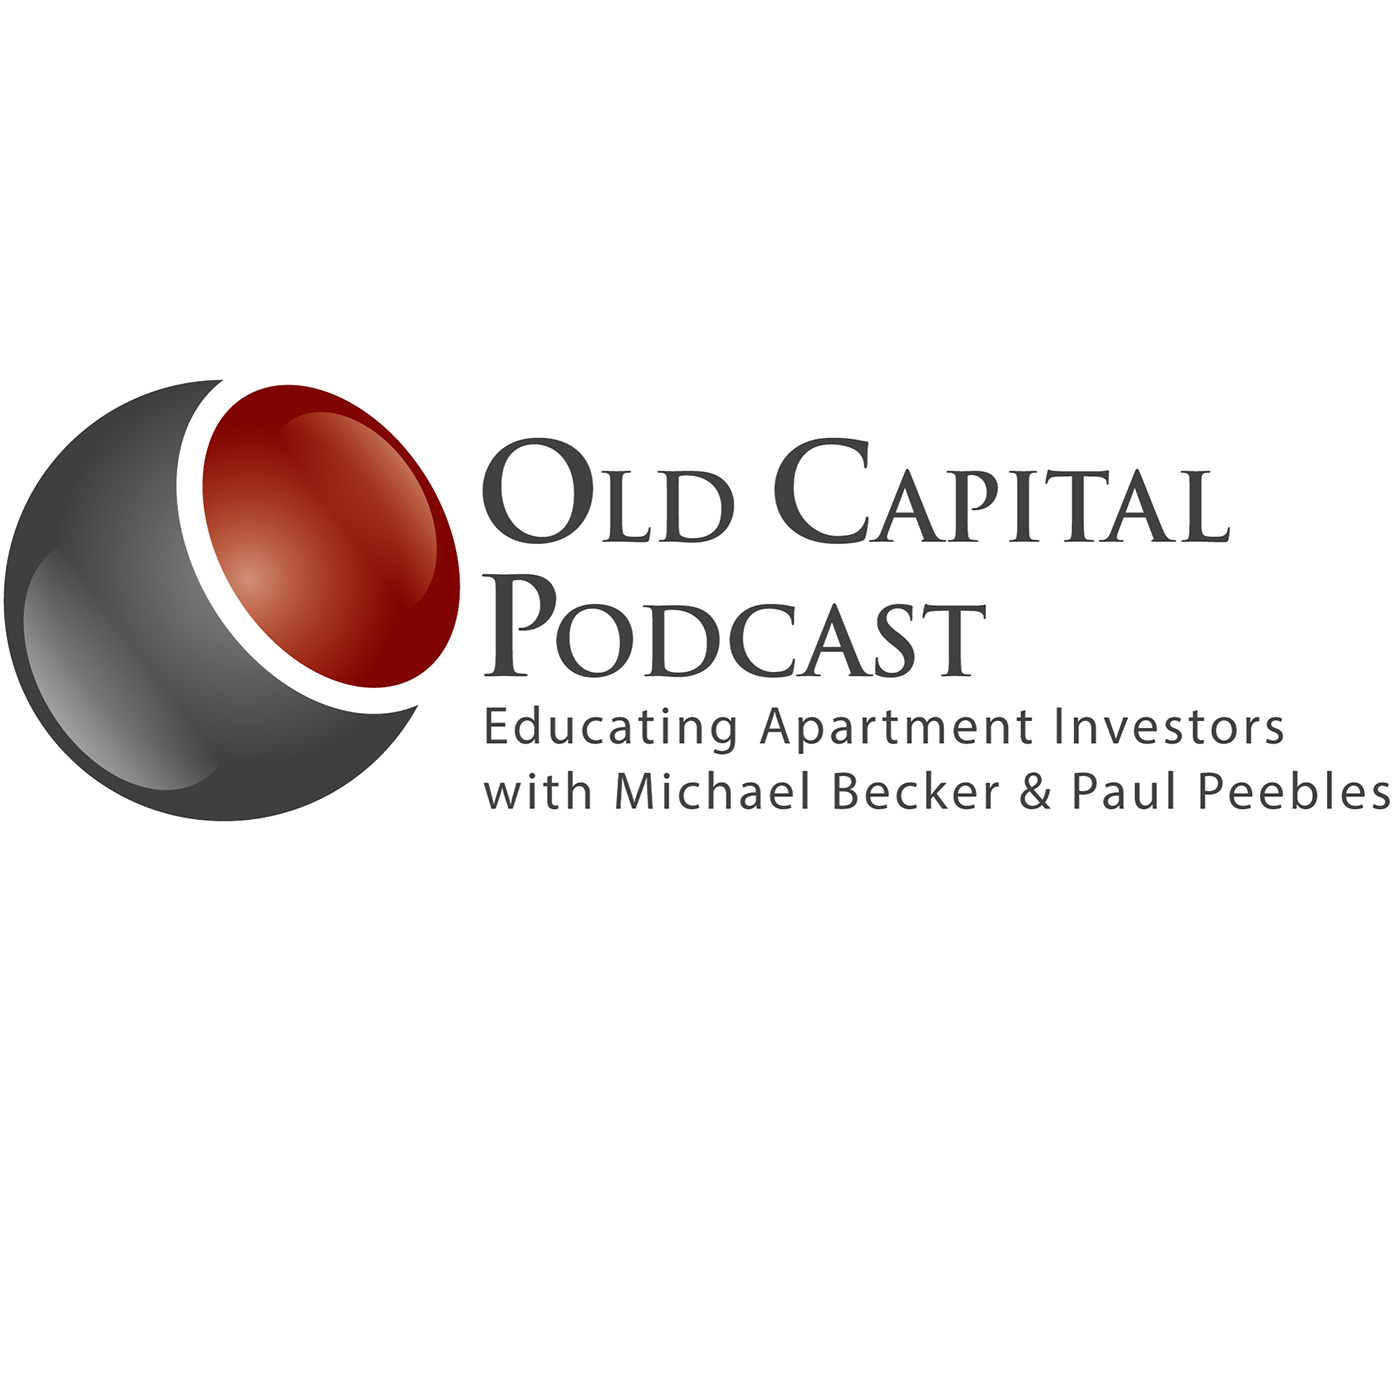 Old Capital Real Estate Investing Podcast with Michael Becker & Paul Peebles show art